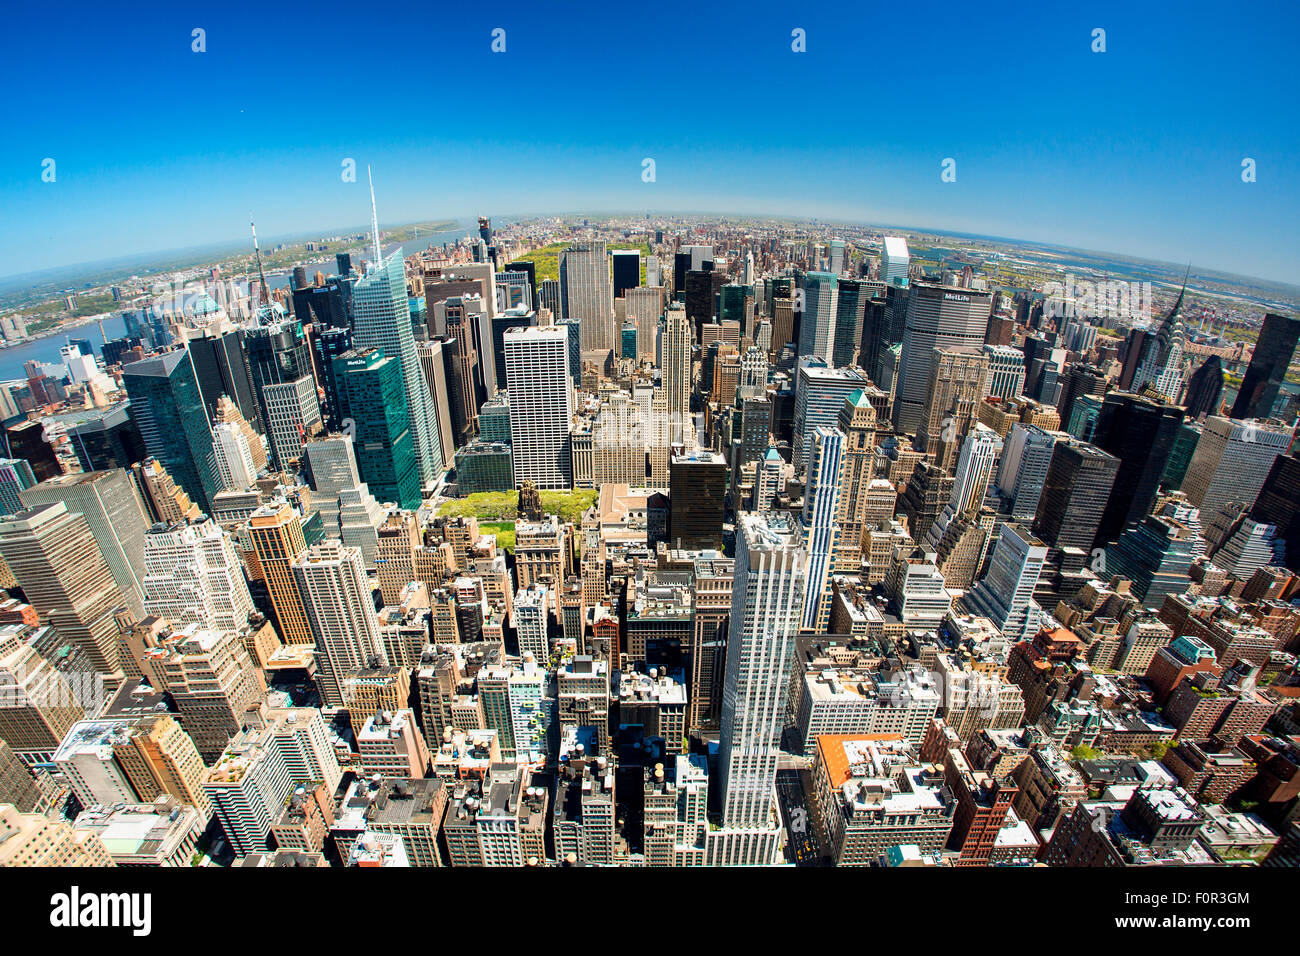 Skyline von New York City Stockfoto